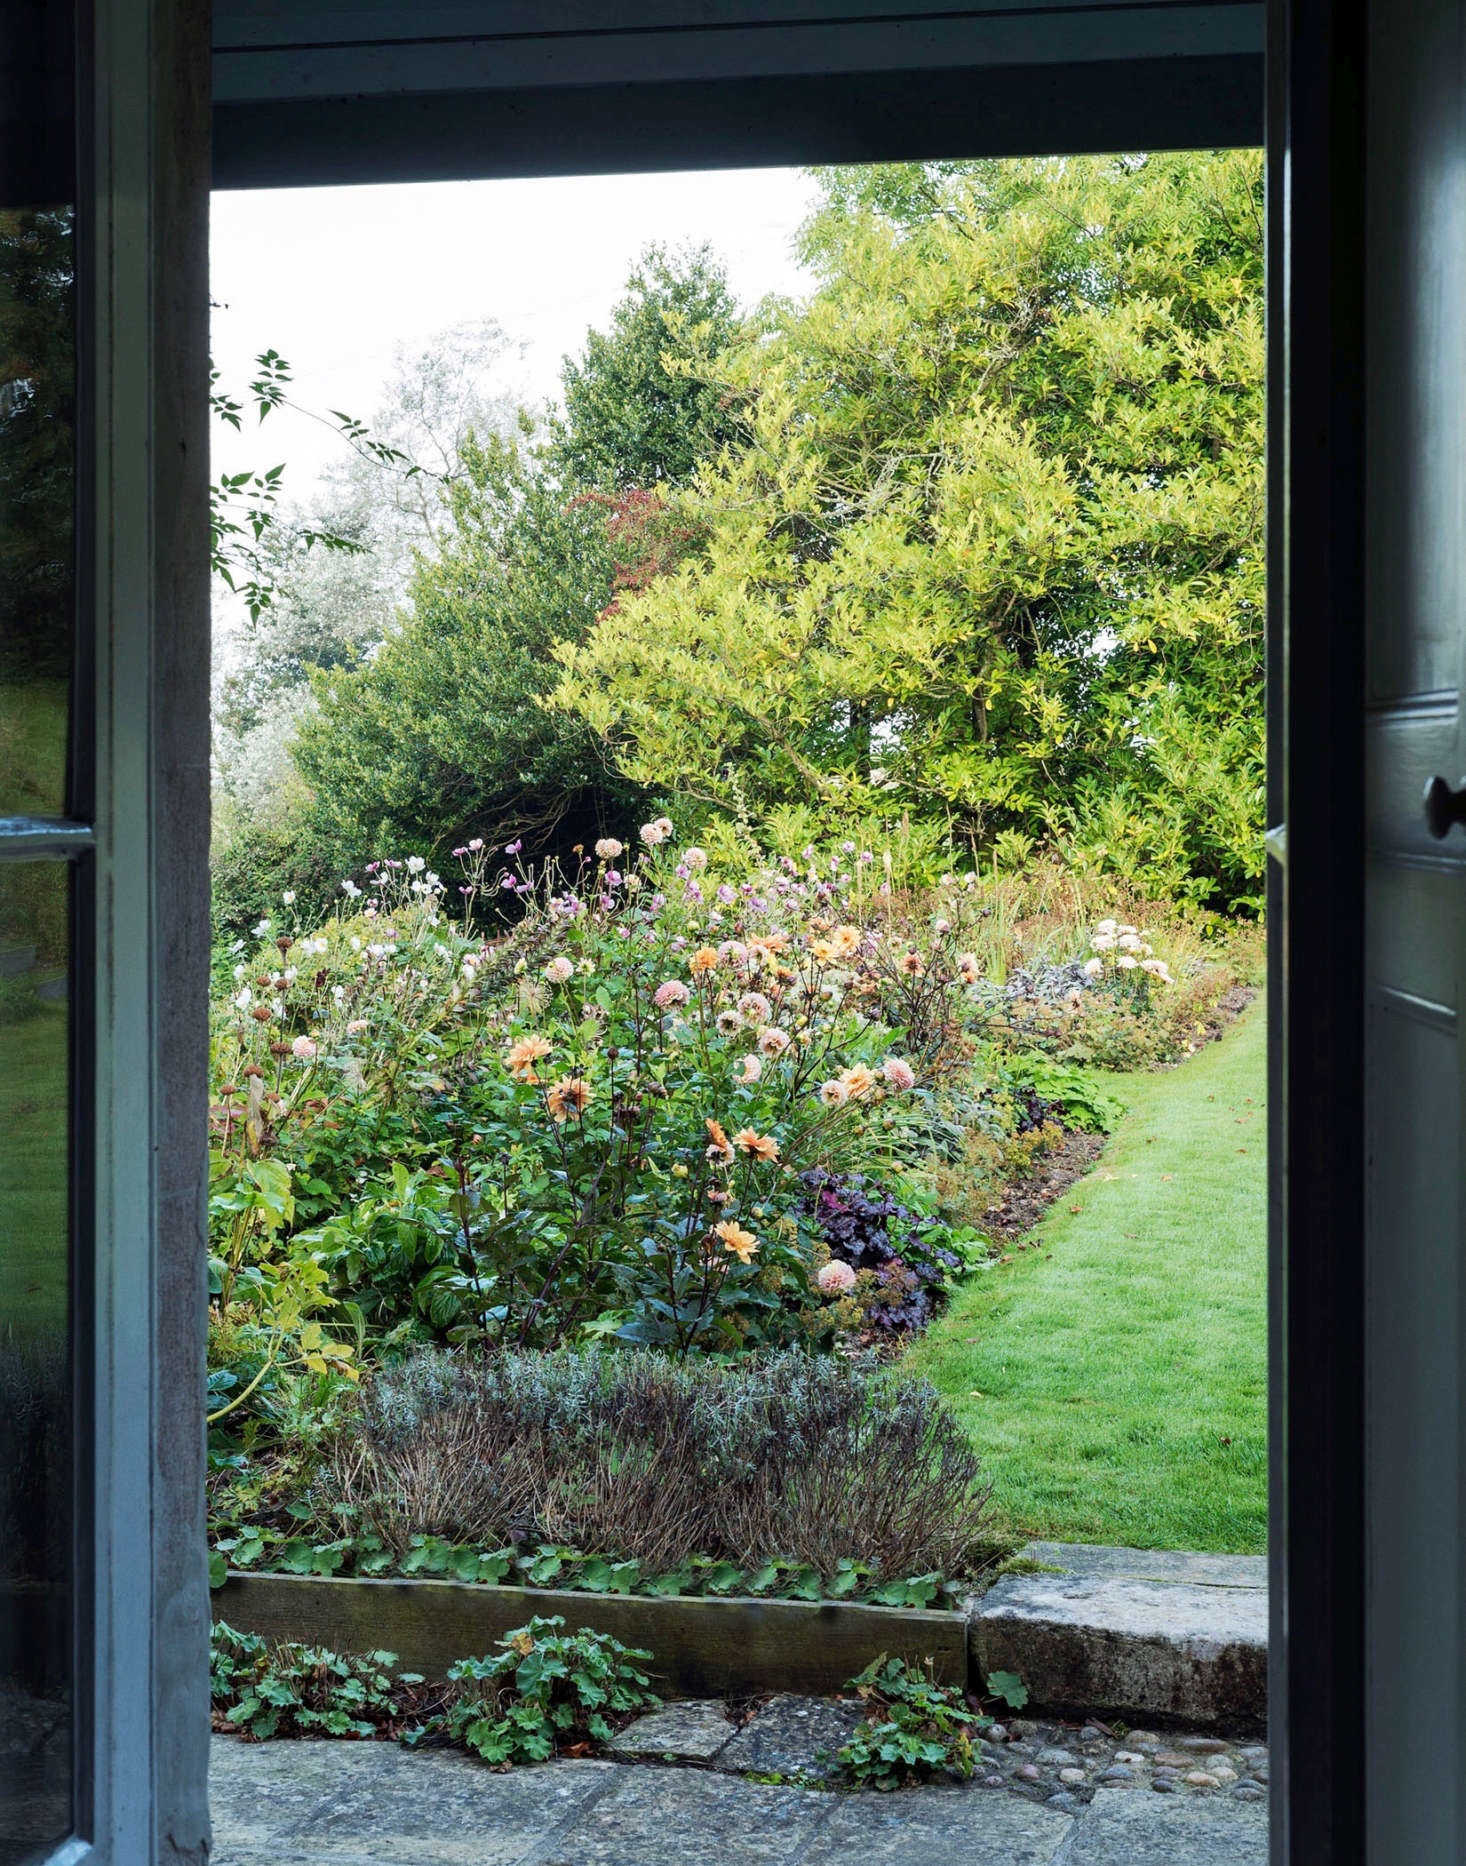 Ornamental garden beds and edible plants are equally at home in Ben Pentreath and Charlie McCormick&#8